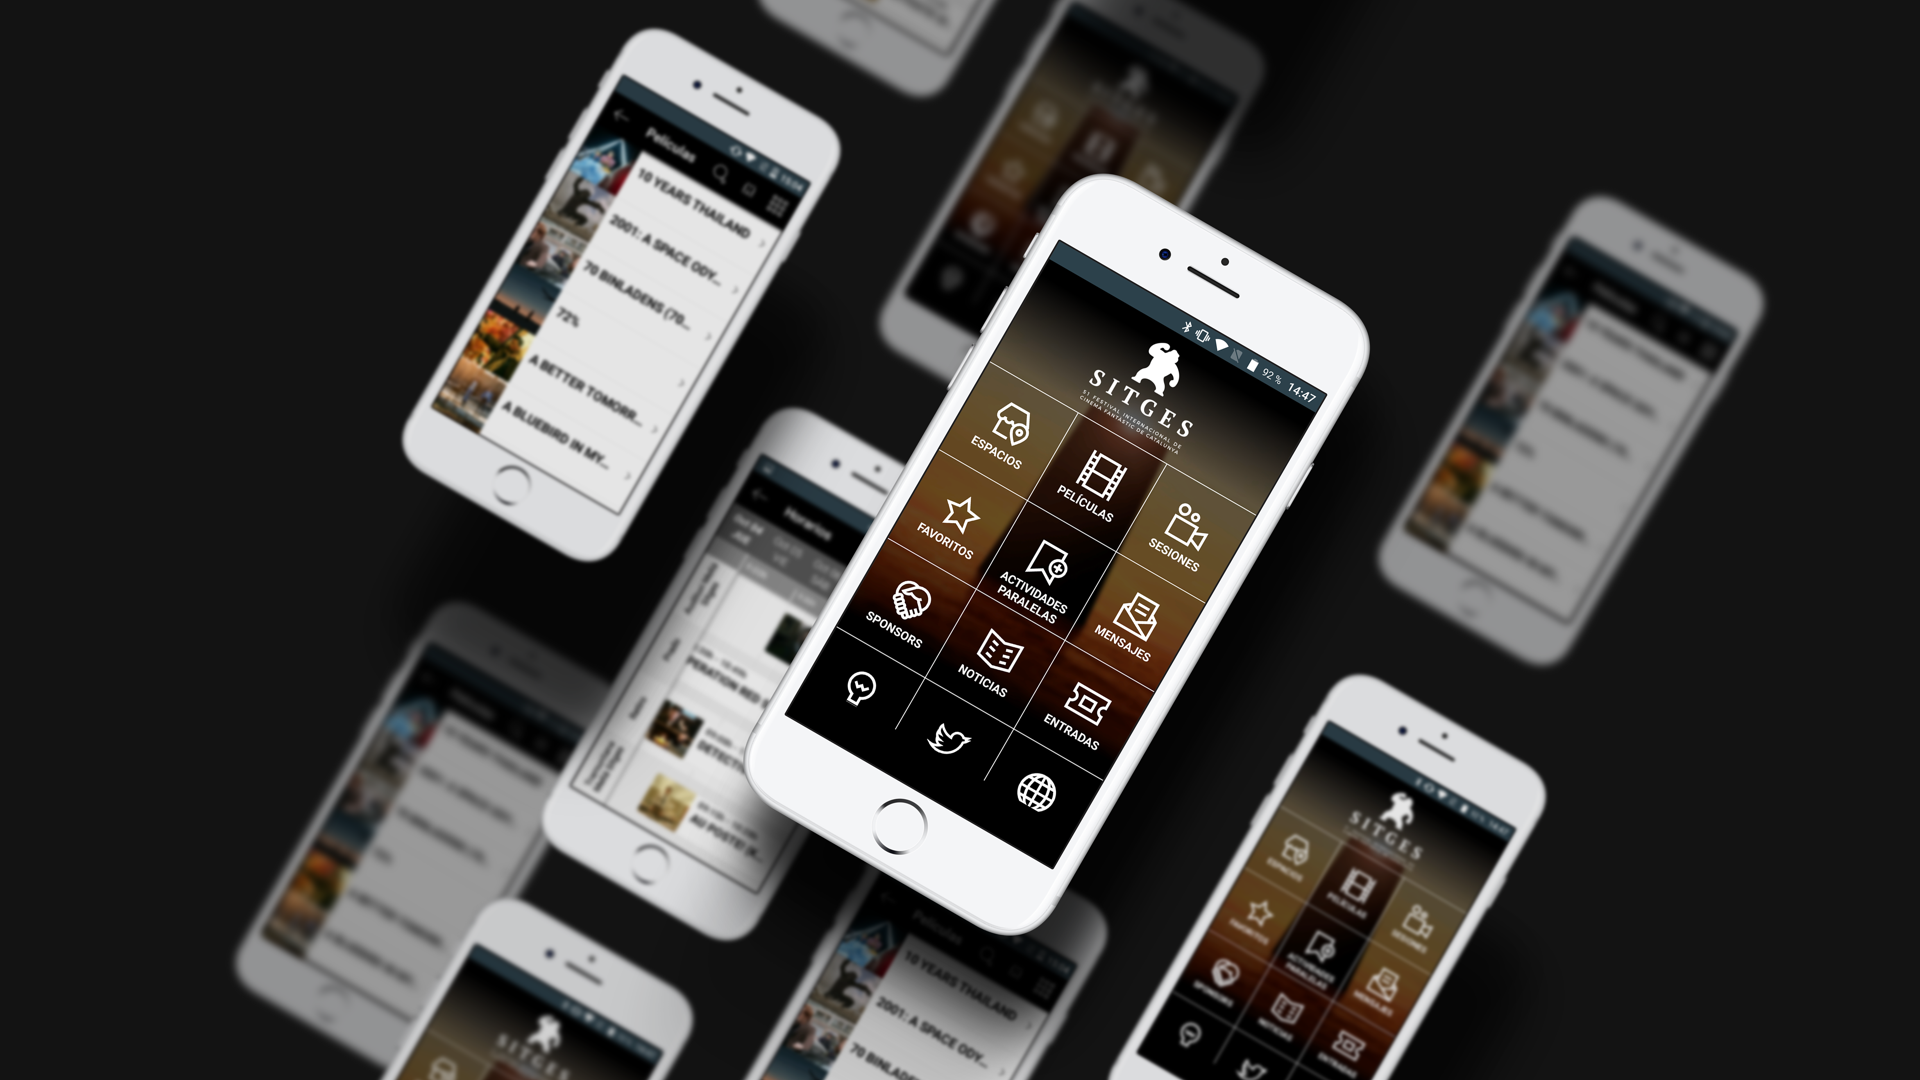 Screenshot of the native app of the Sitges film festival of 2016